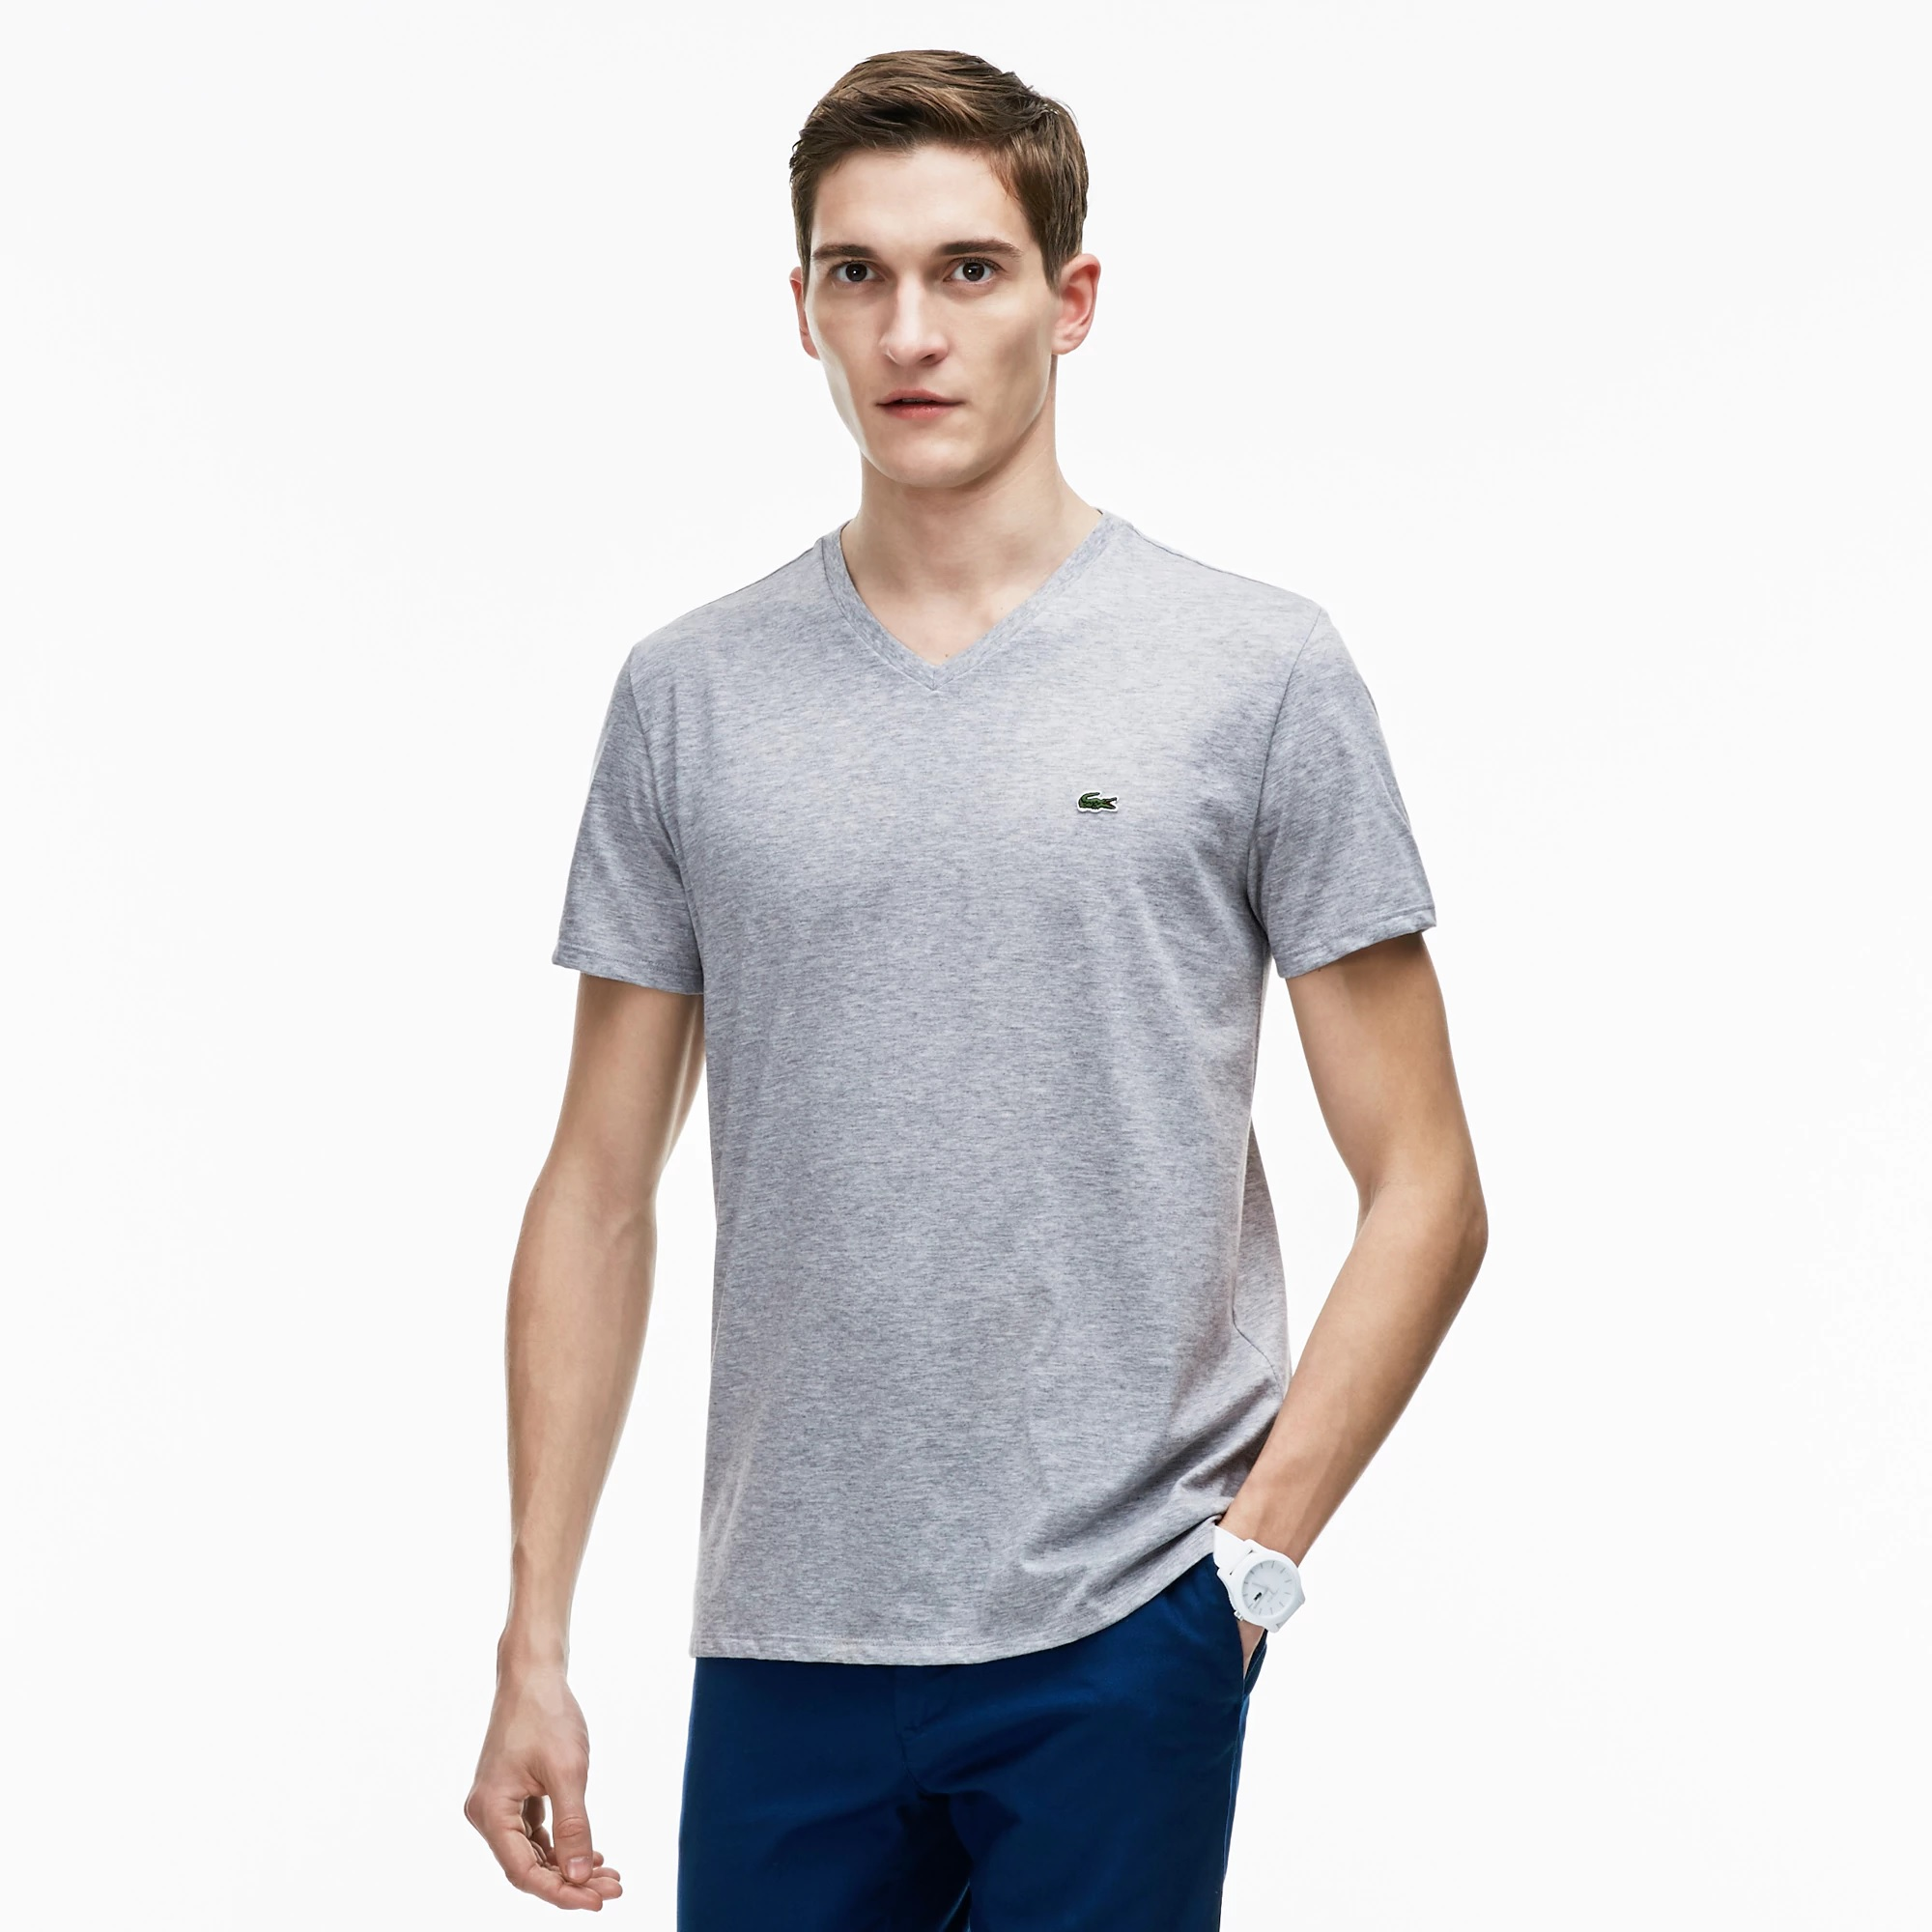 Lacoste Men's V-neck Pima Cotton Jersey T-shirt Silver Ch...